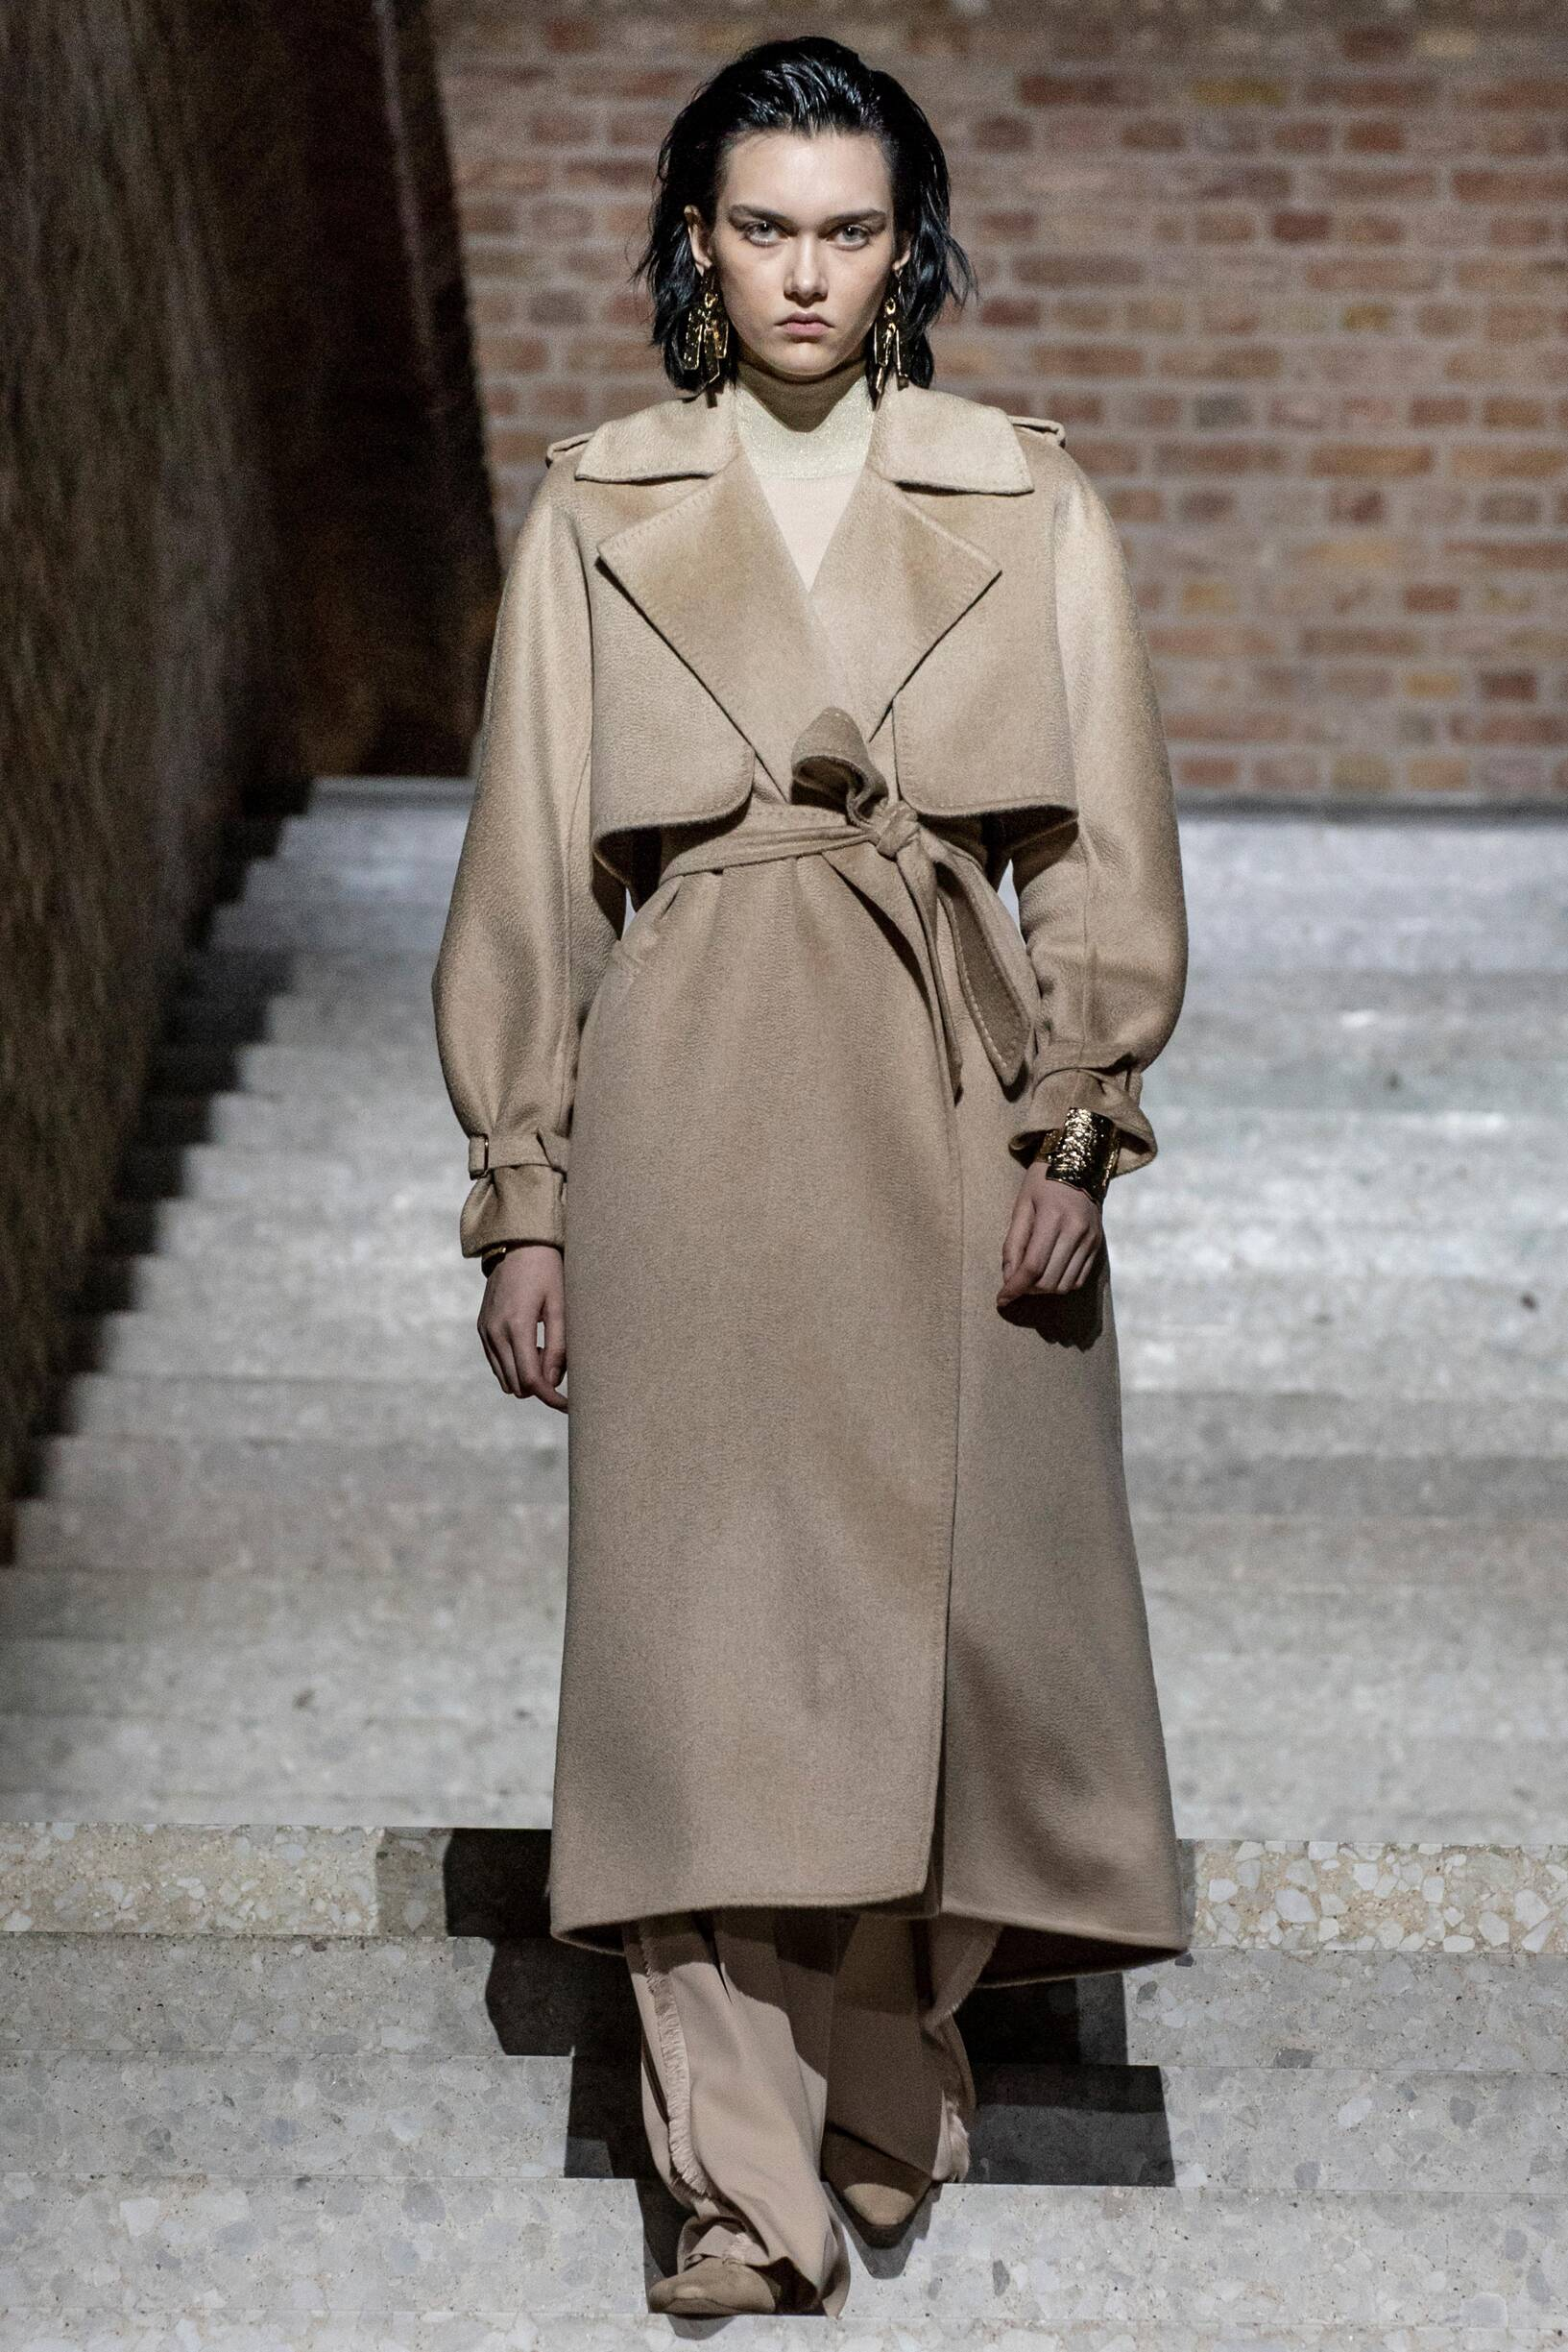 Max Mara Resort 2020 Collection Look 1 Berlin